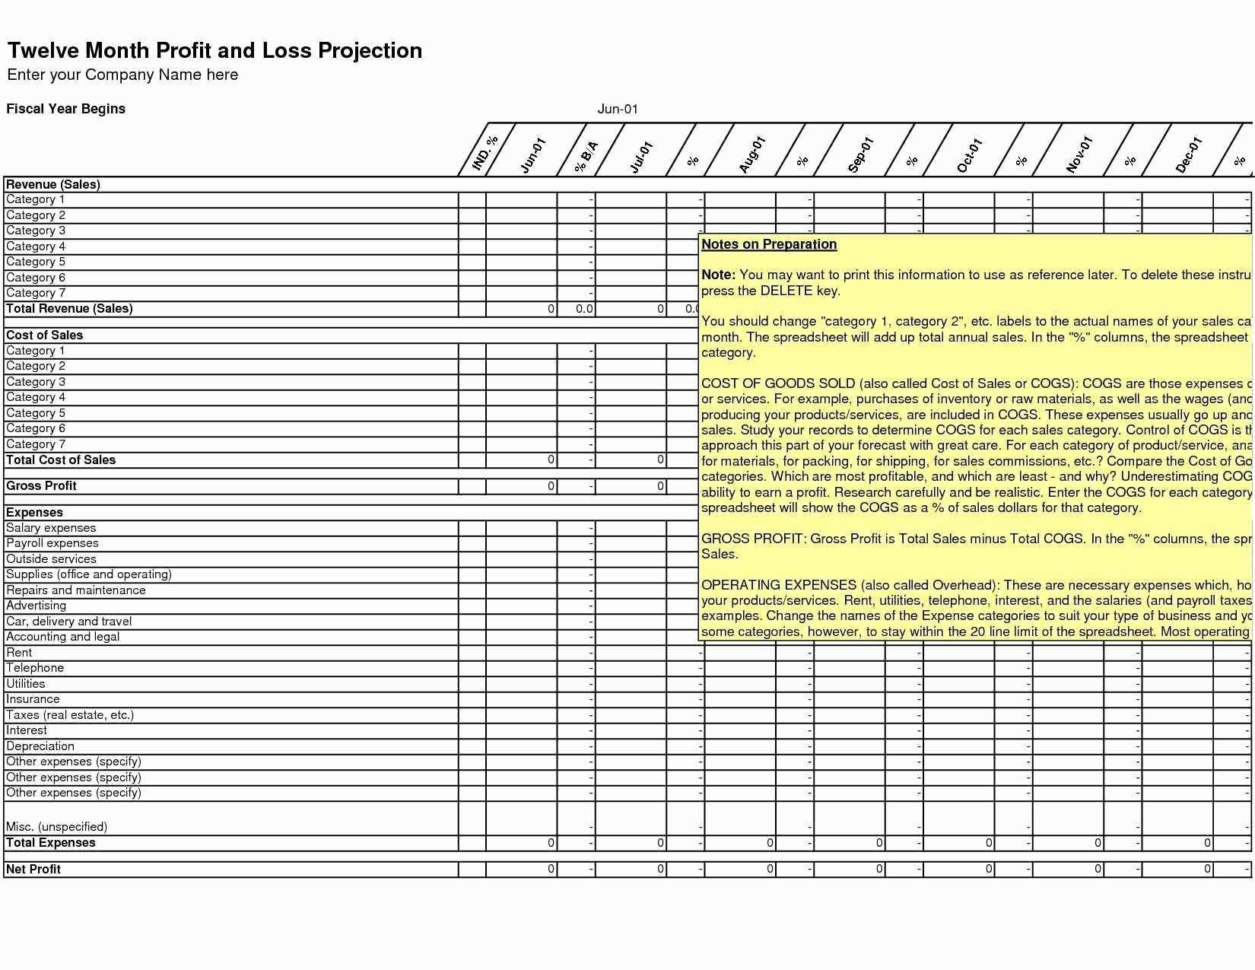 Tax Spreadsheet Template For Business Intended For Small Business Tax Spreadsheet Template List Of Small Business